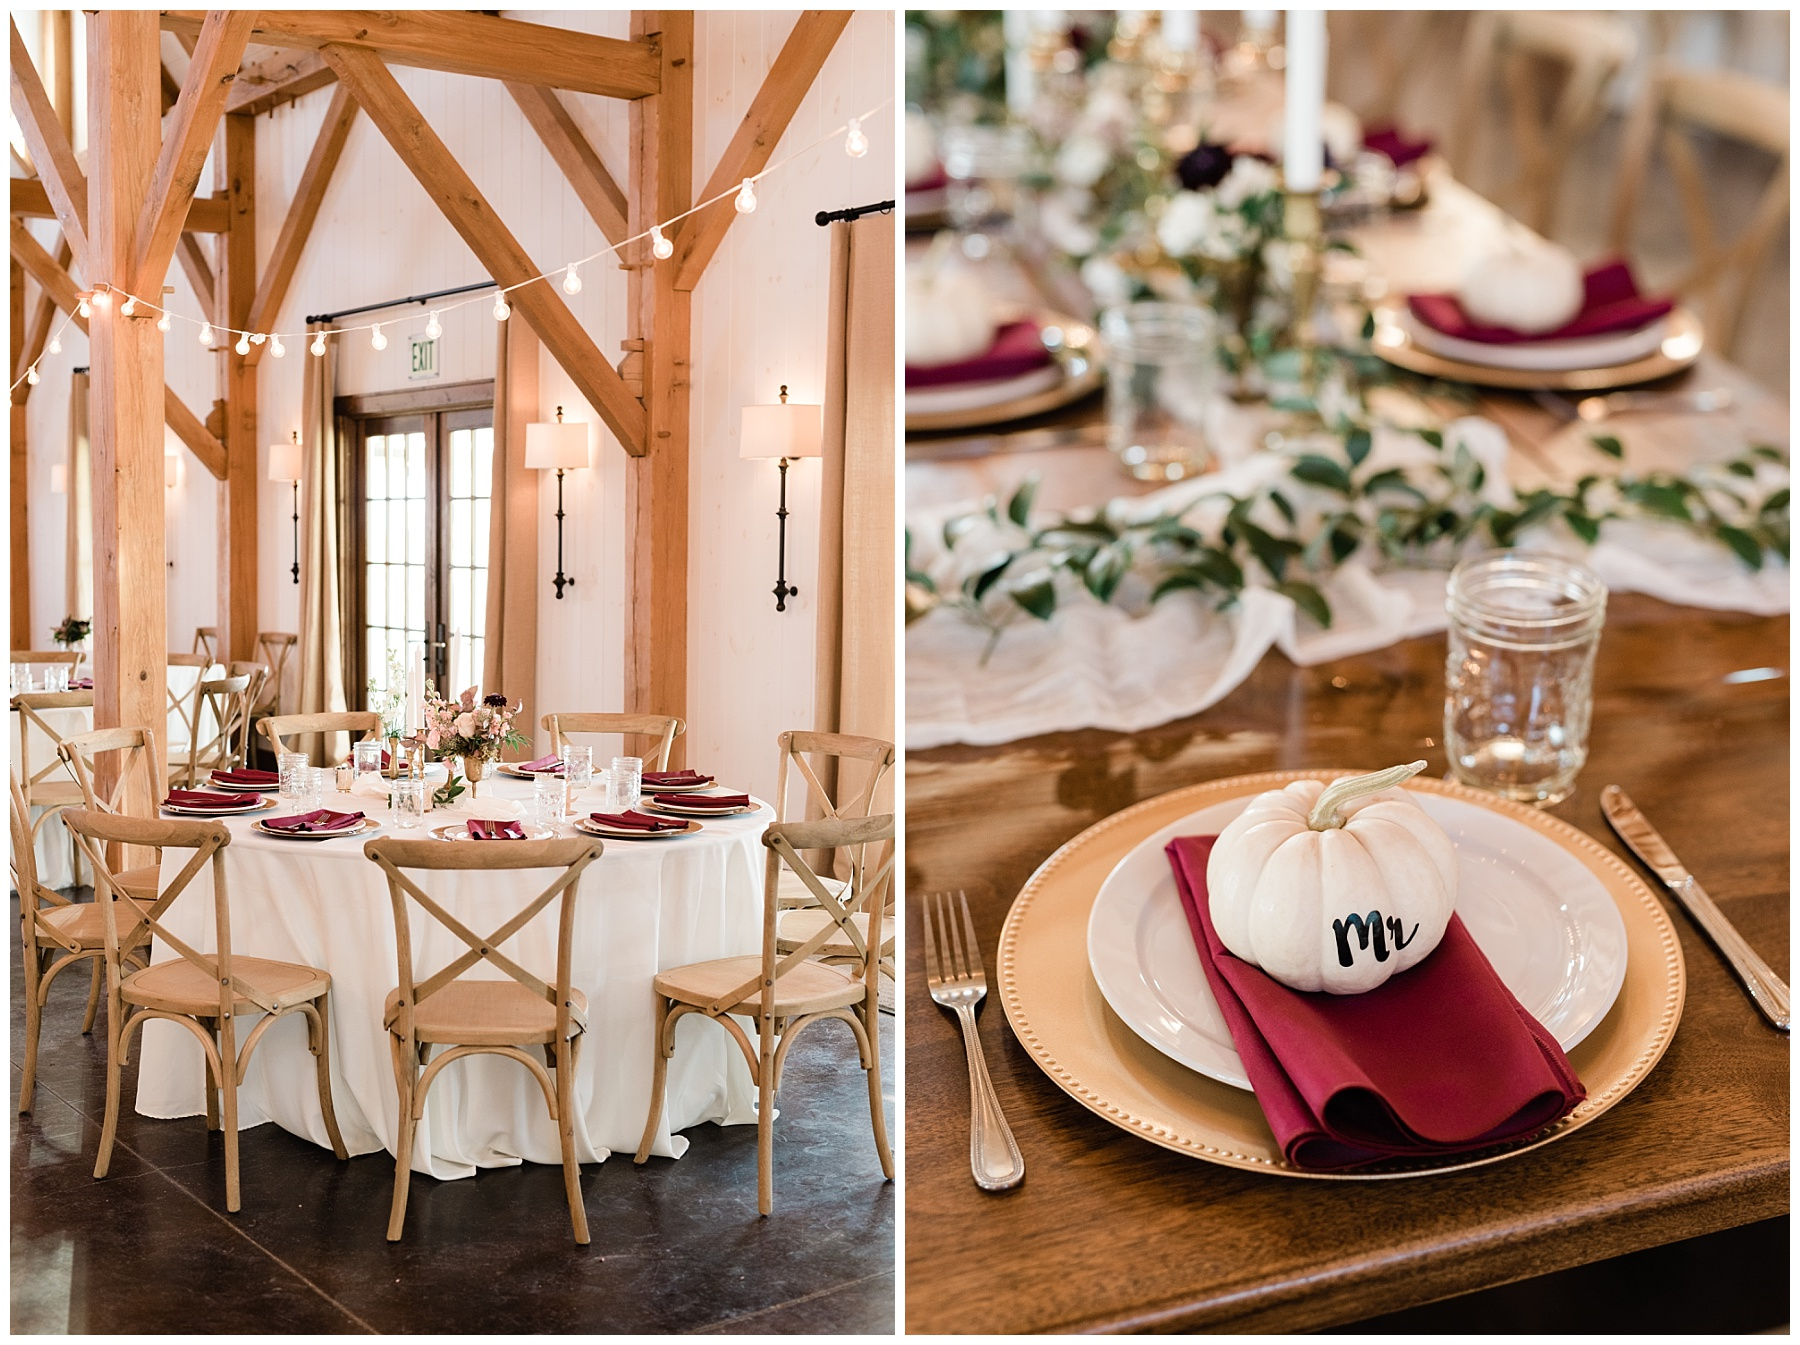 Golden Autumn Outdoor Wedding with Ivory, Bergundy, and Blush Color Palette at Blue Bell Farms  by Kelsi Kliethermes Photography_0079.jpg